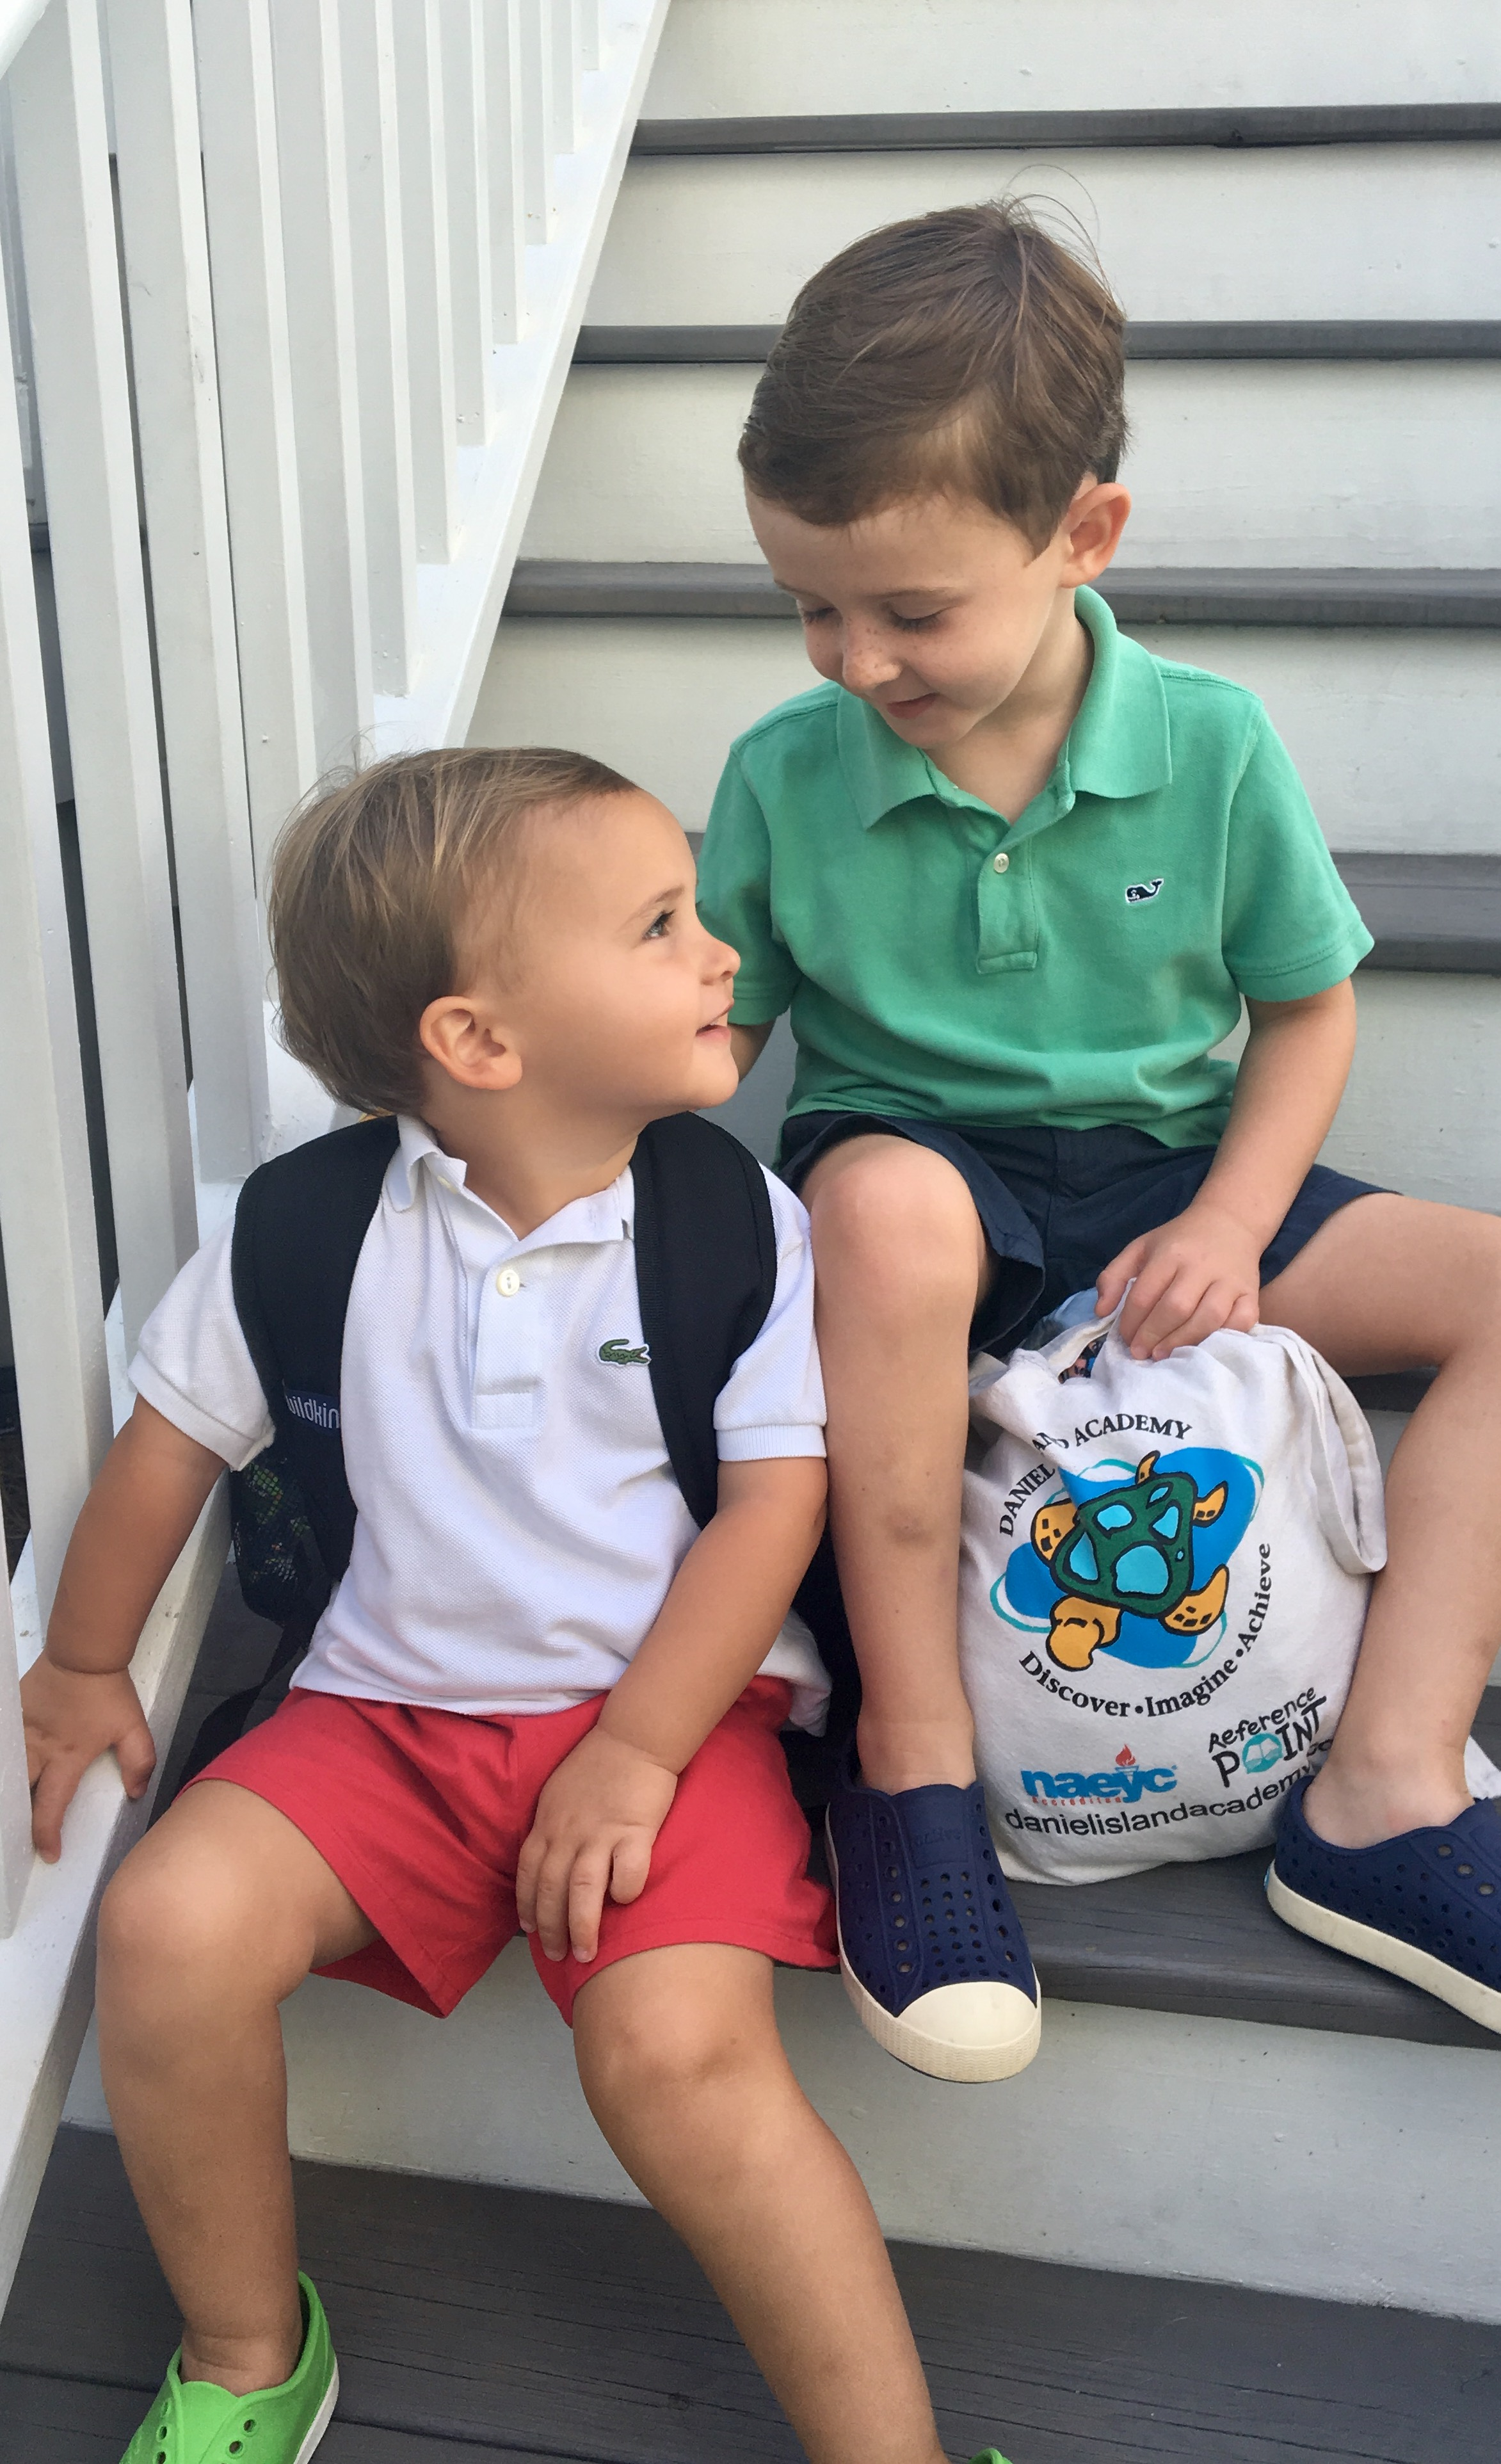 Bennett Delman, age 2, and his brother, Carter, 4, are both students at Daniel Island Academy.